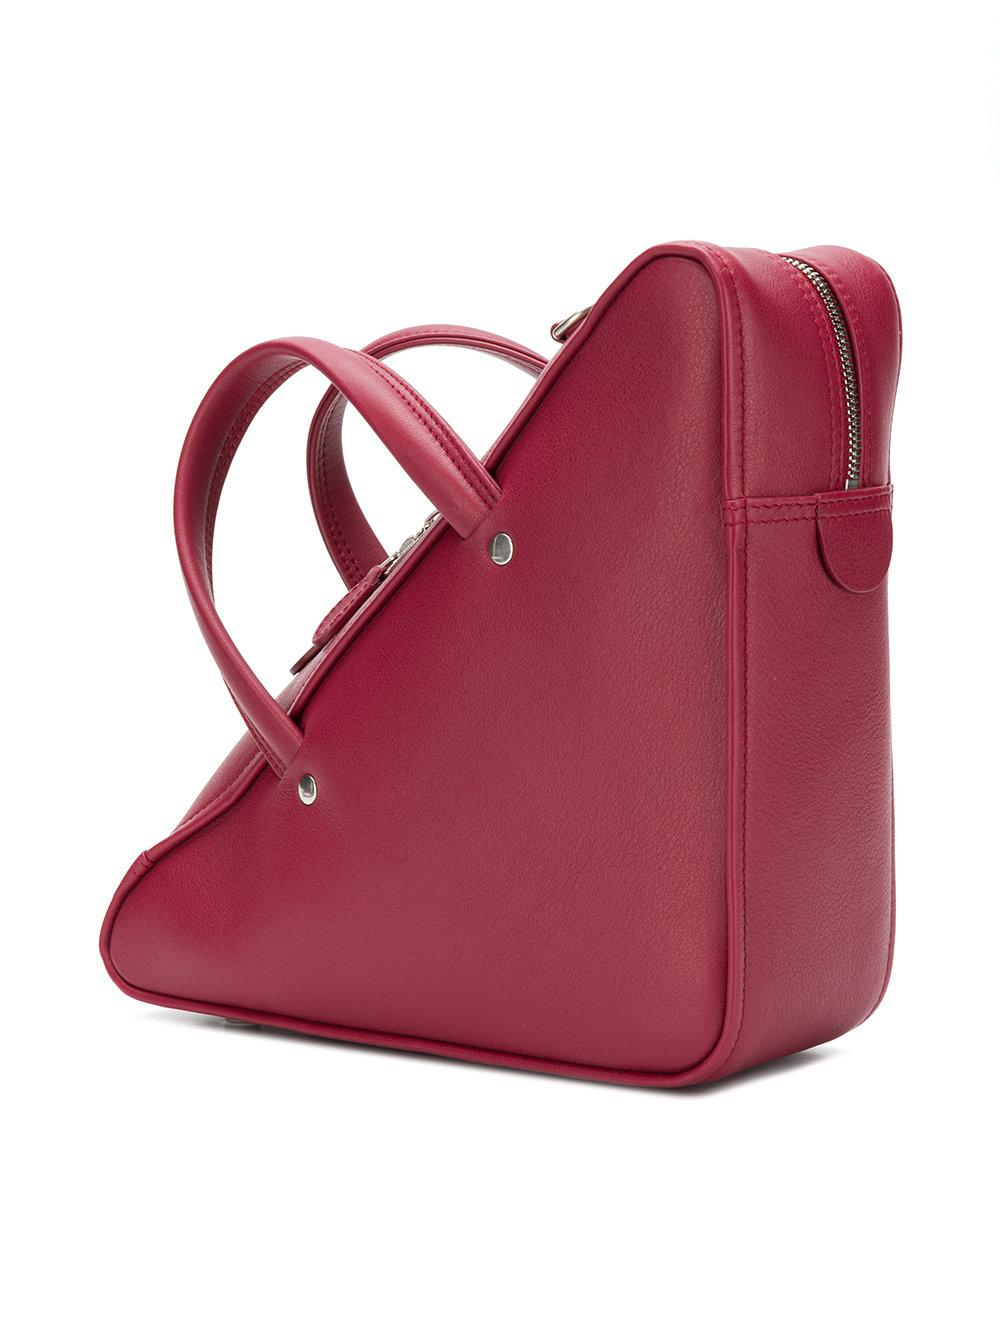 Triangle Duffle Coloris Sac S À En Balenciaga Lyst Rouge Main pItCxg